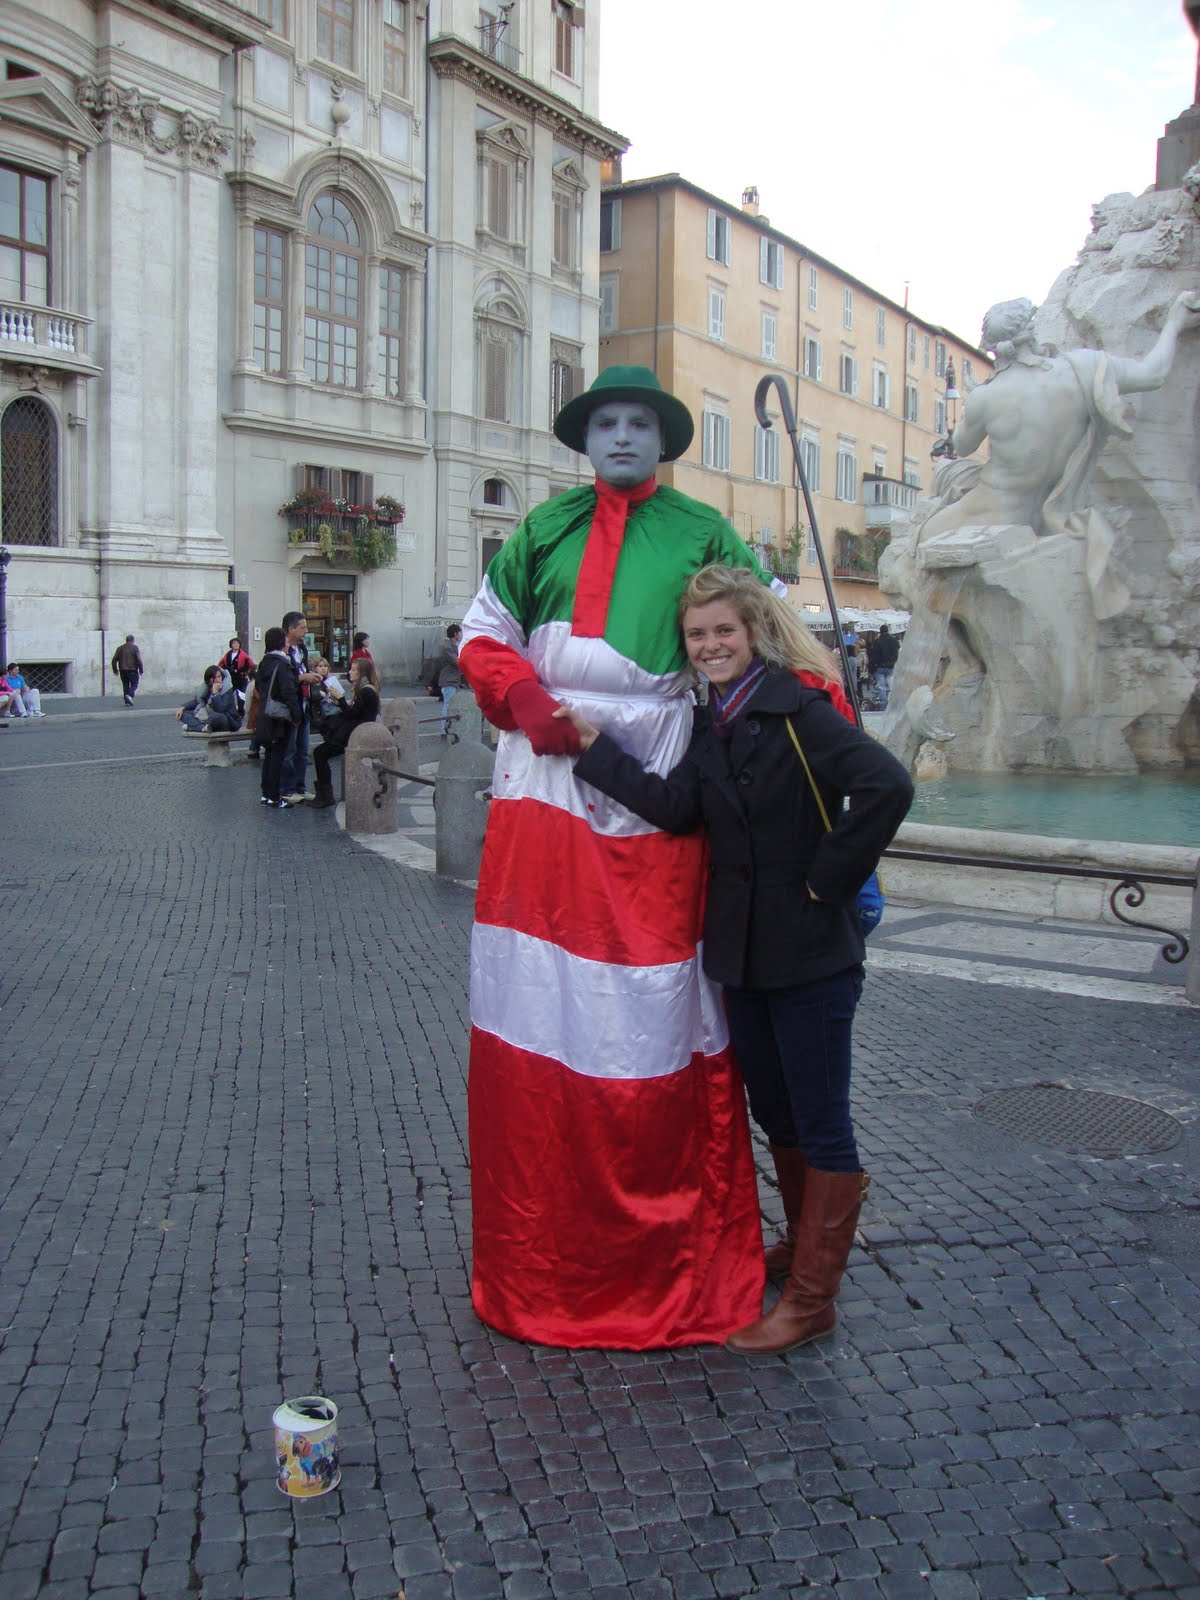 Spanish Boy On Tumblr: Anja's Year Abroad!: Piazza Navona Art And FOUR Cute